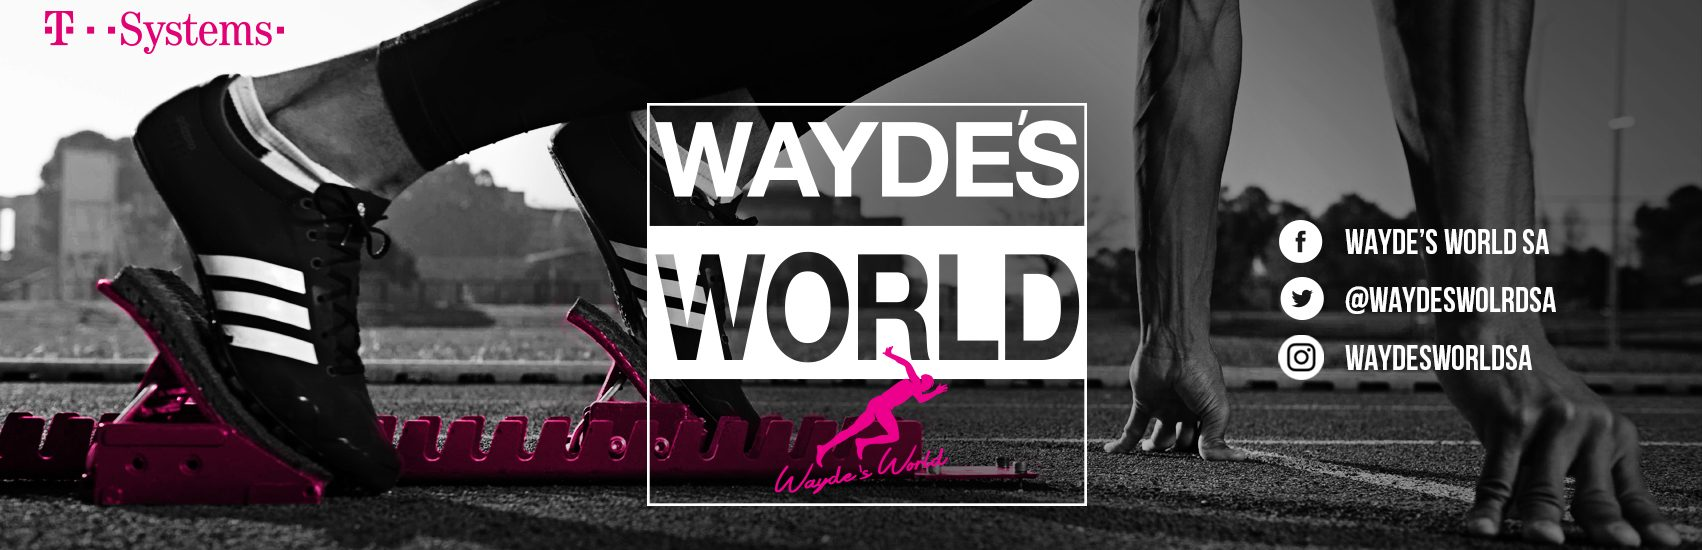 waydes-world_fb_coverpage_02d